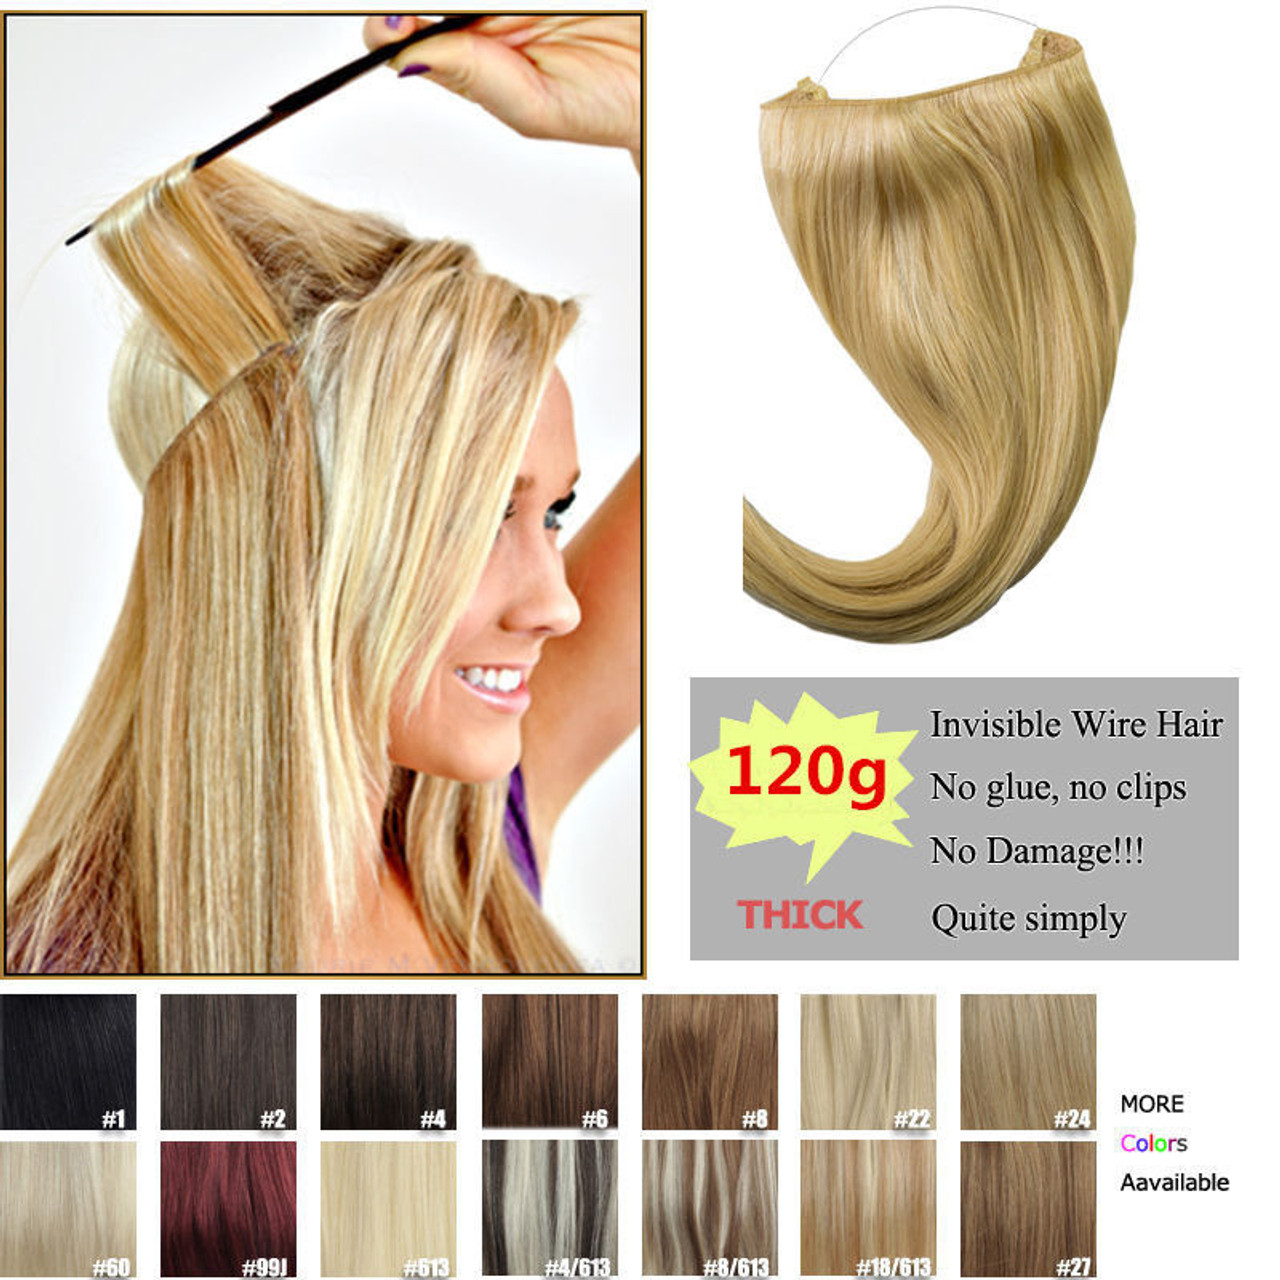 Remeehi 120g Flip In Thick Human Remy Secret Invisible Wire Hair